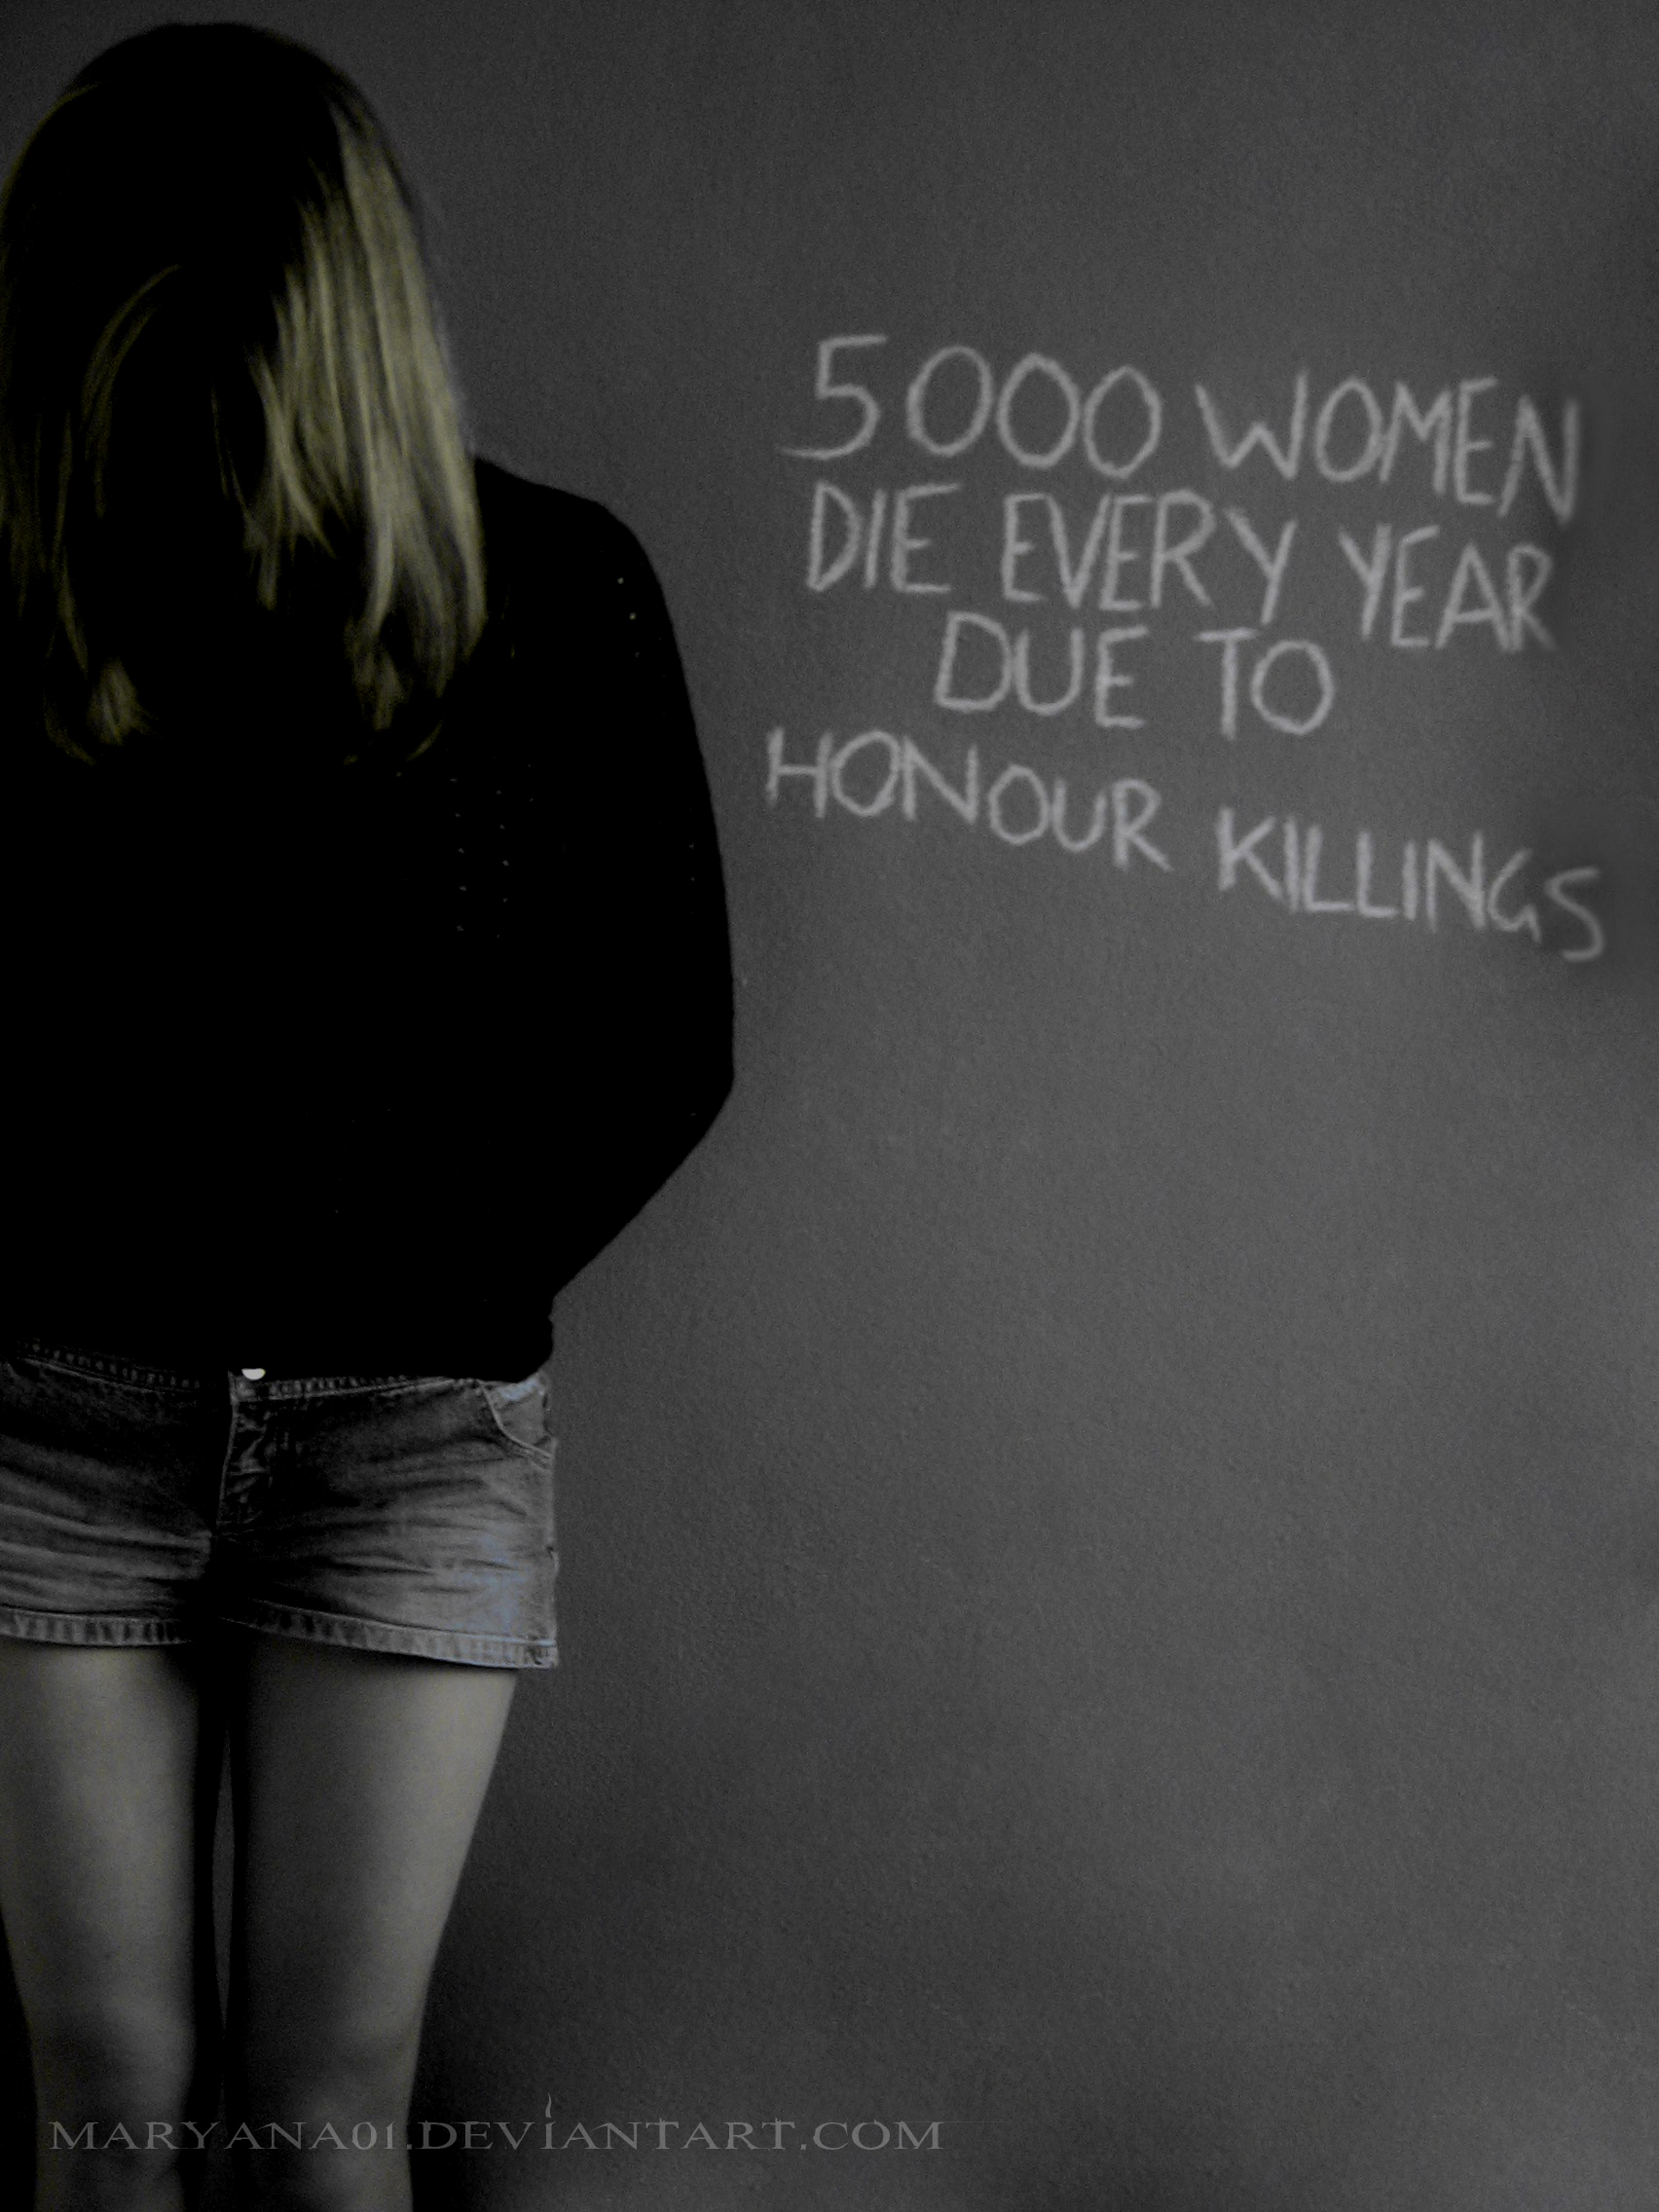 honor killings arthur frederick ide s blog honor killings